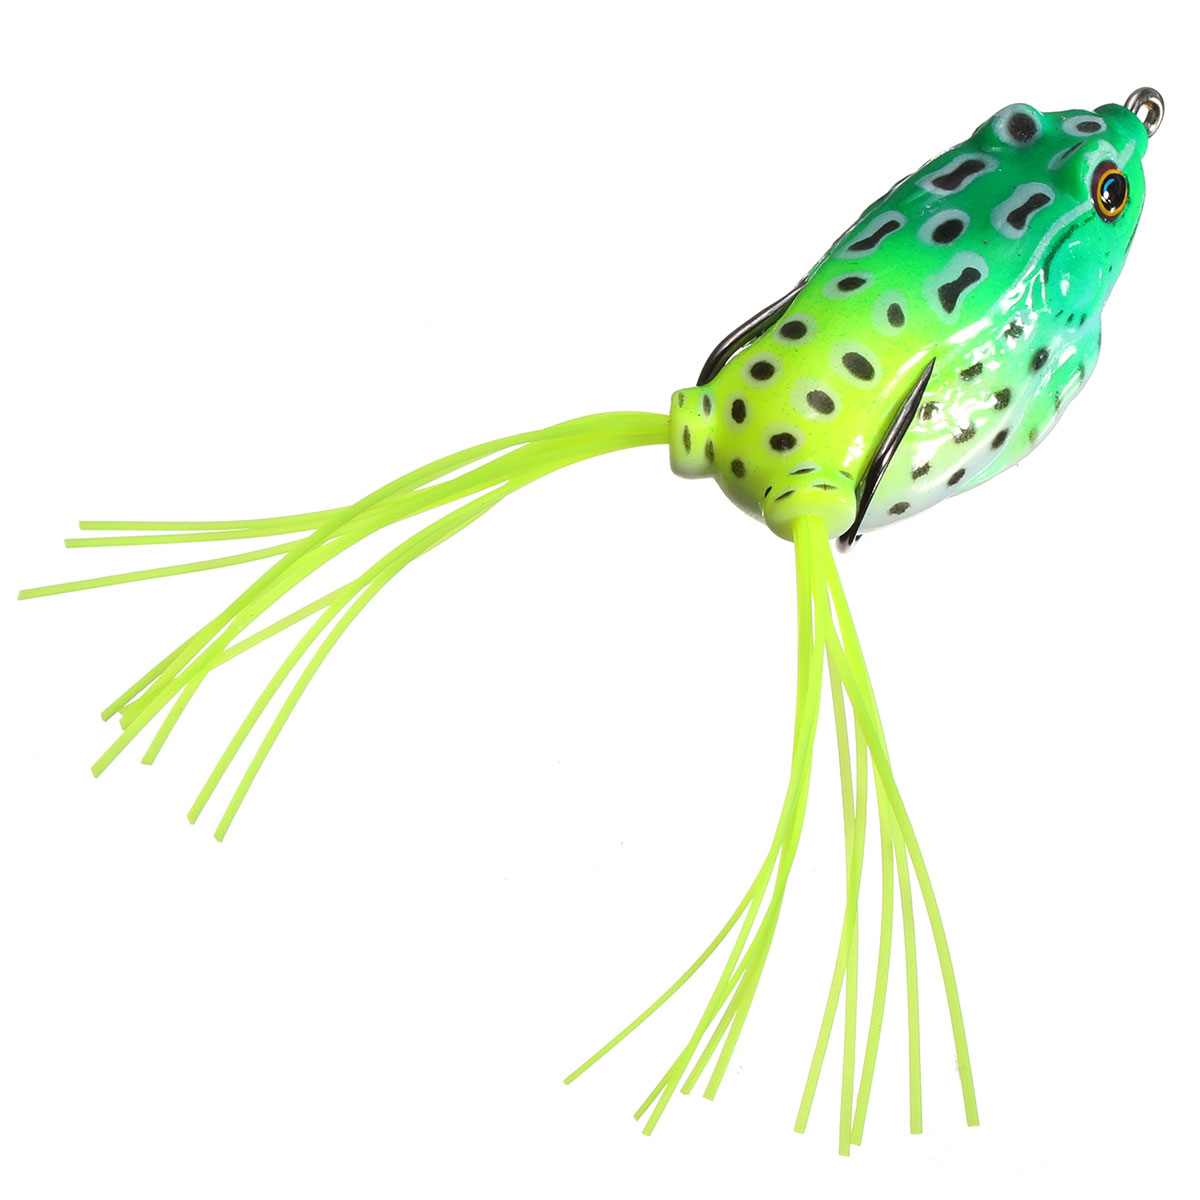 Fishing Lure Soft Frog Baits Frog Hollow Body Soft Bait Fishing Tackle